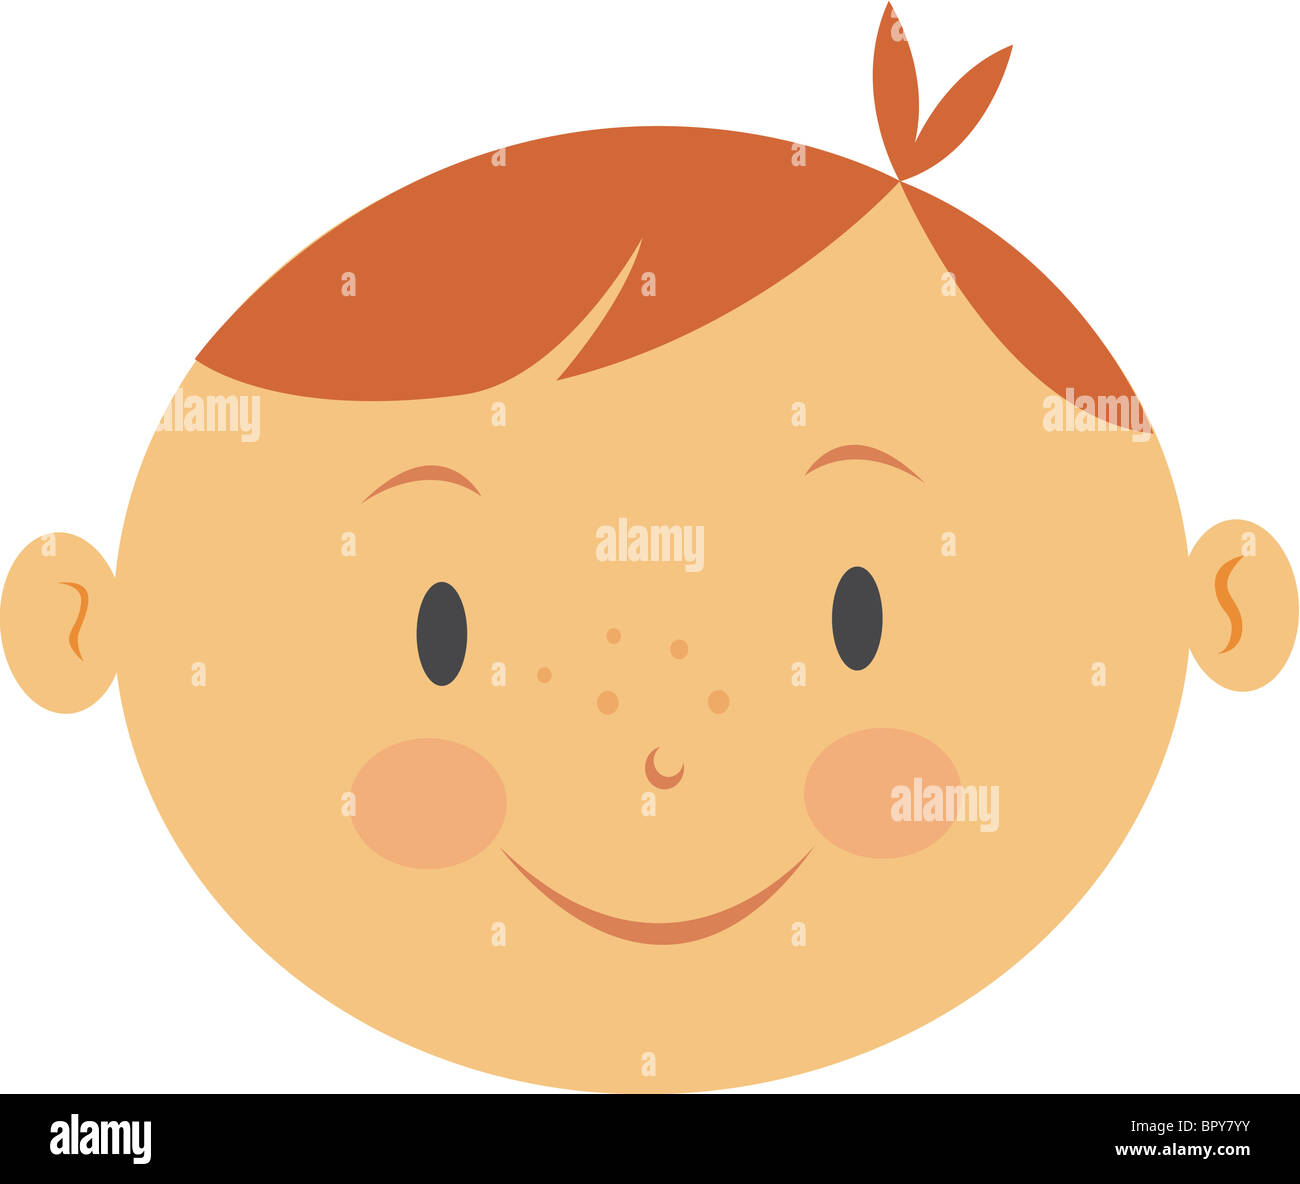 Illustration of a boy with red hair - Stock Image